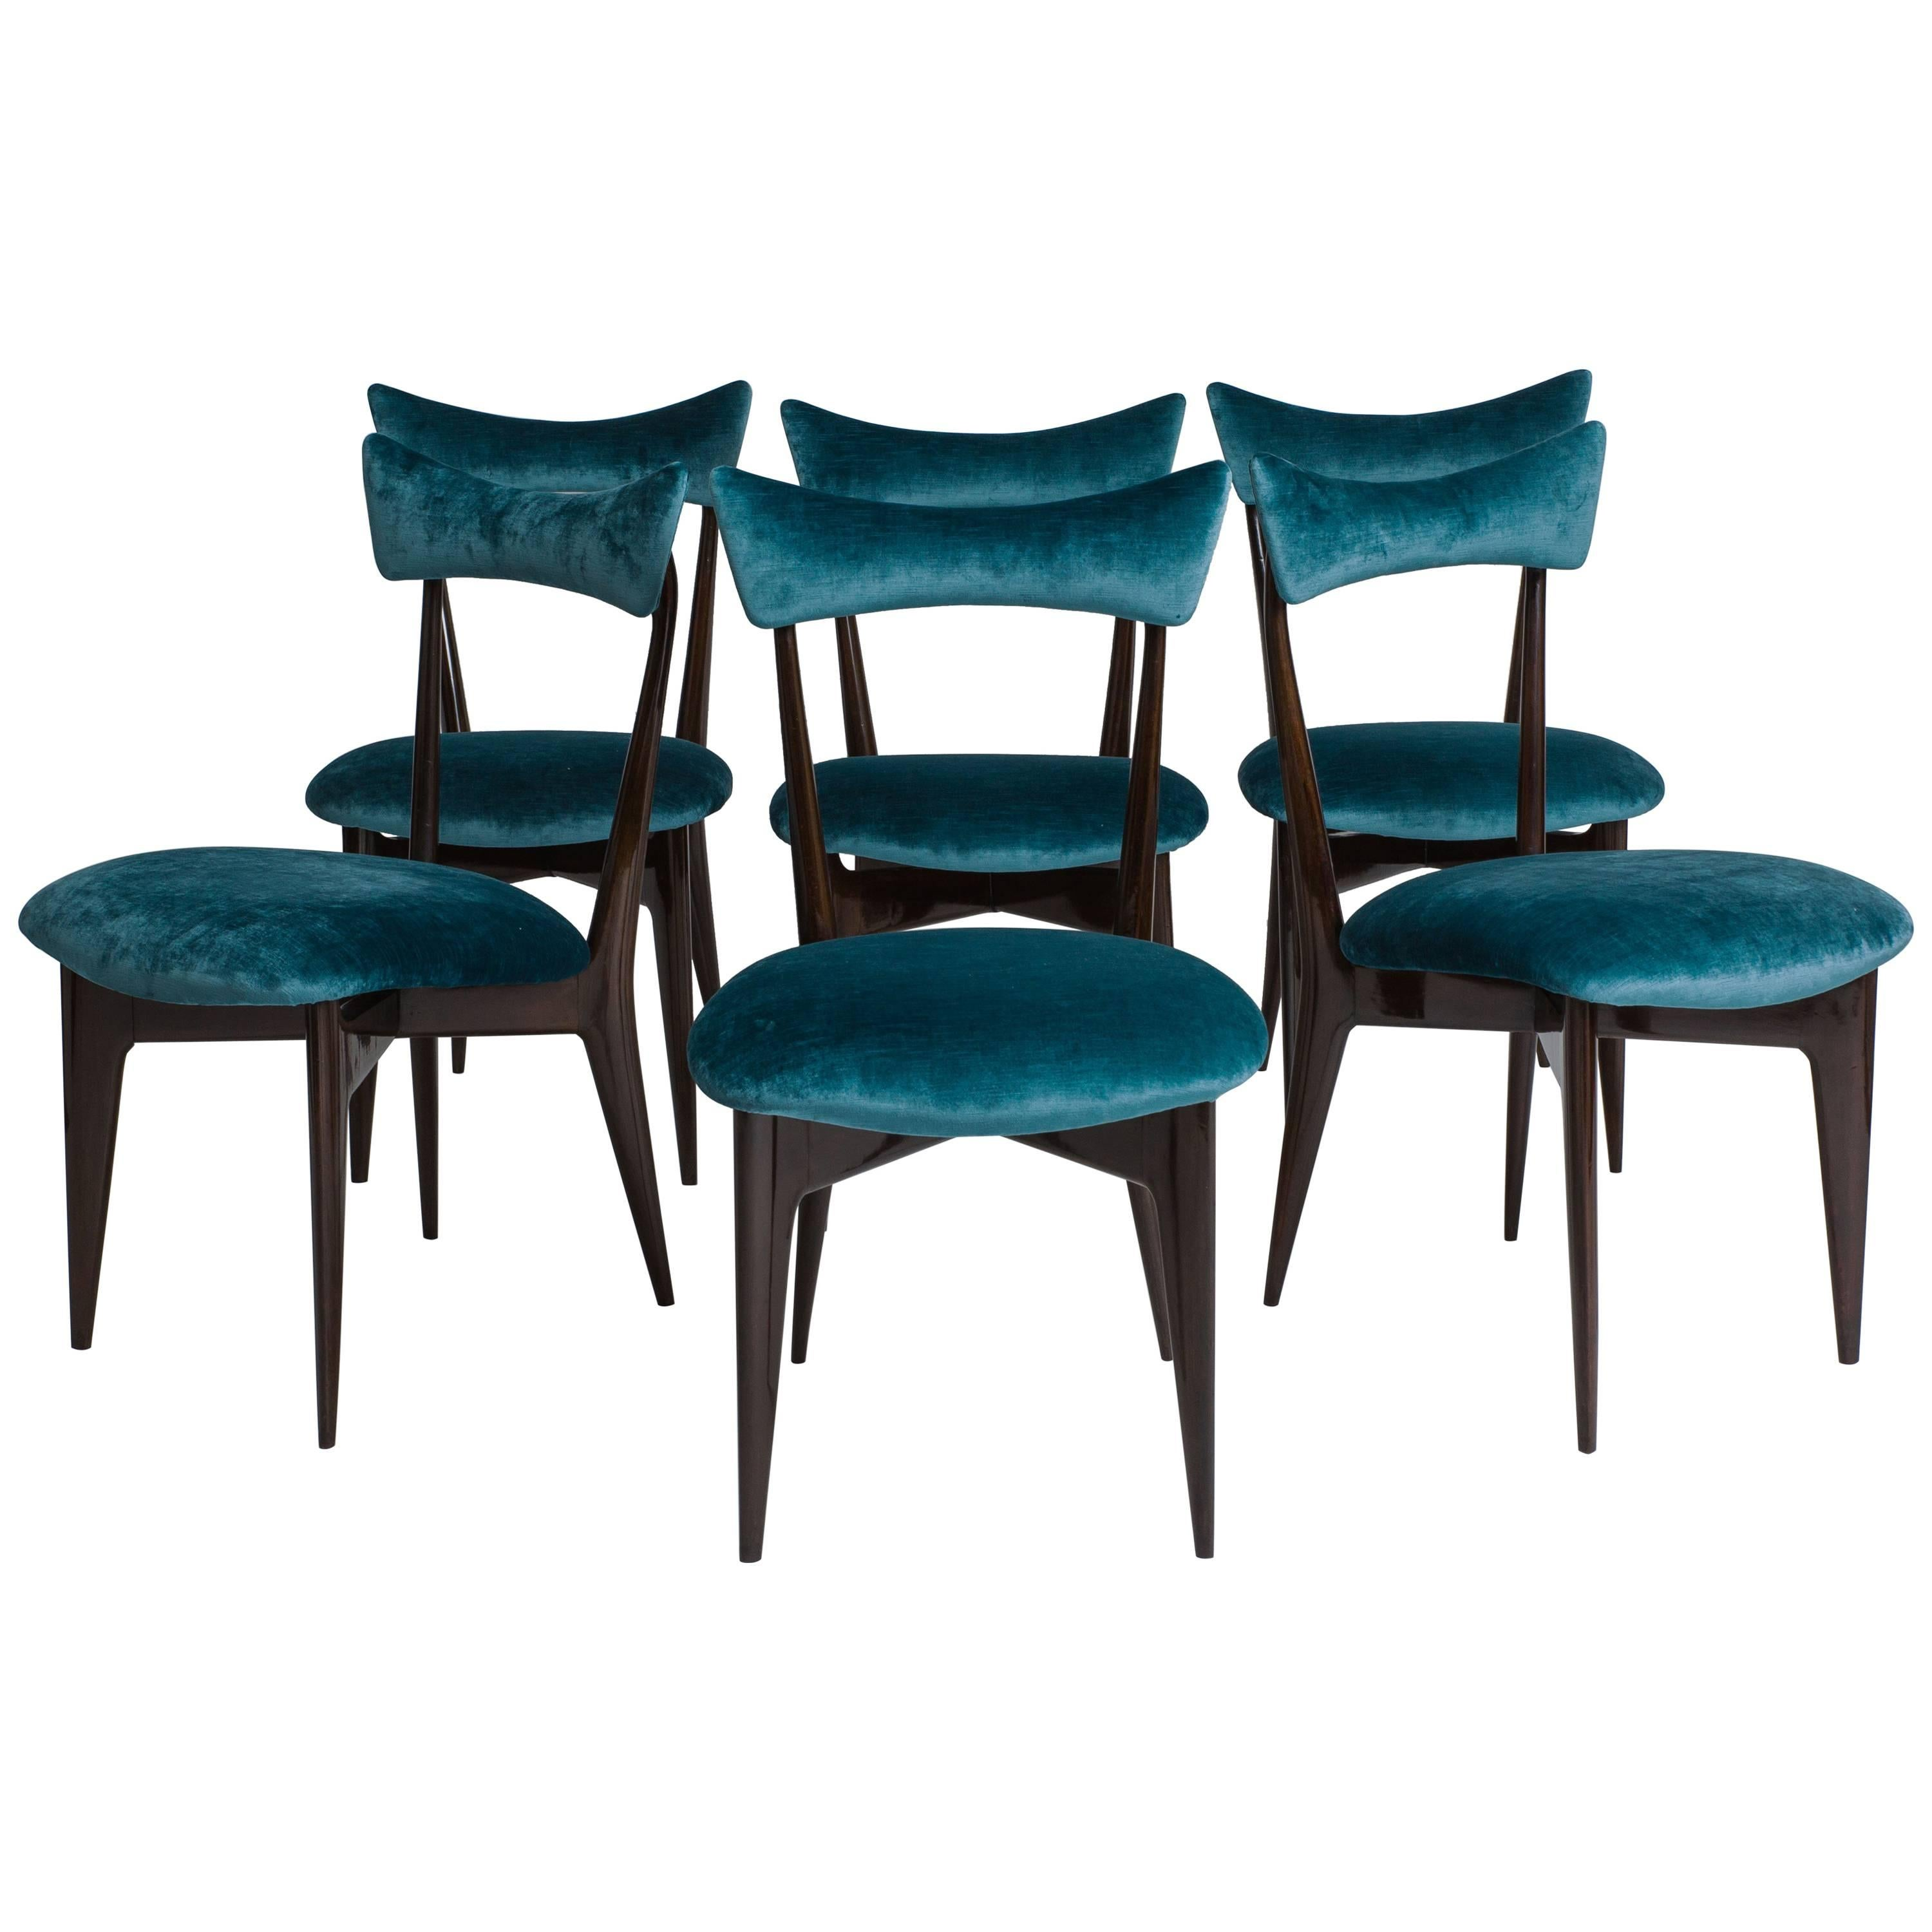 Ico U0026amp; Luisa Parisi Set Of Six Rosewood Sculptural Dining Chairs, Italy,  1950